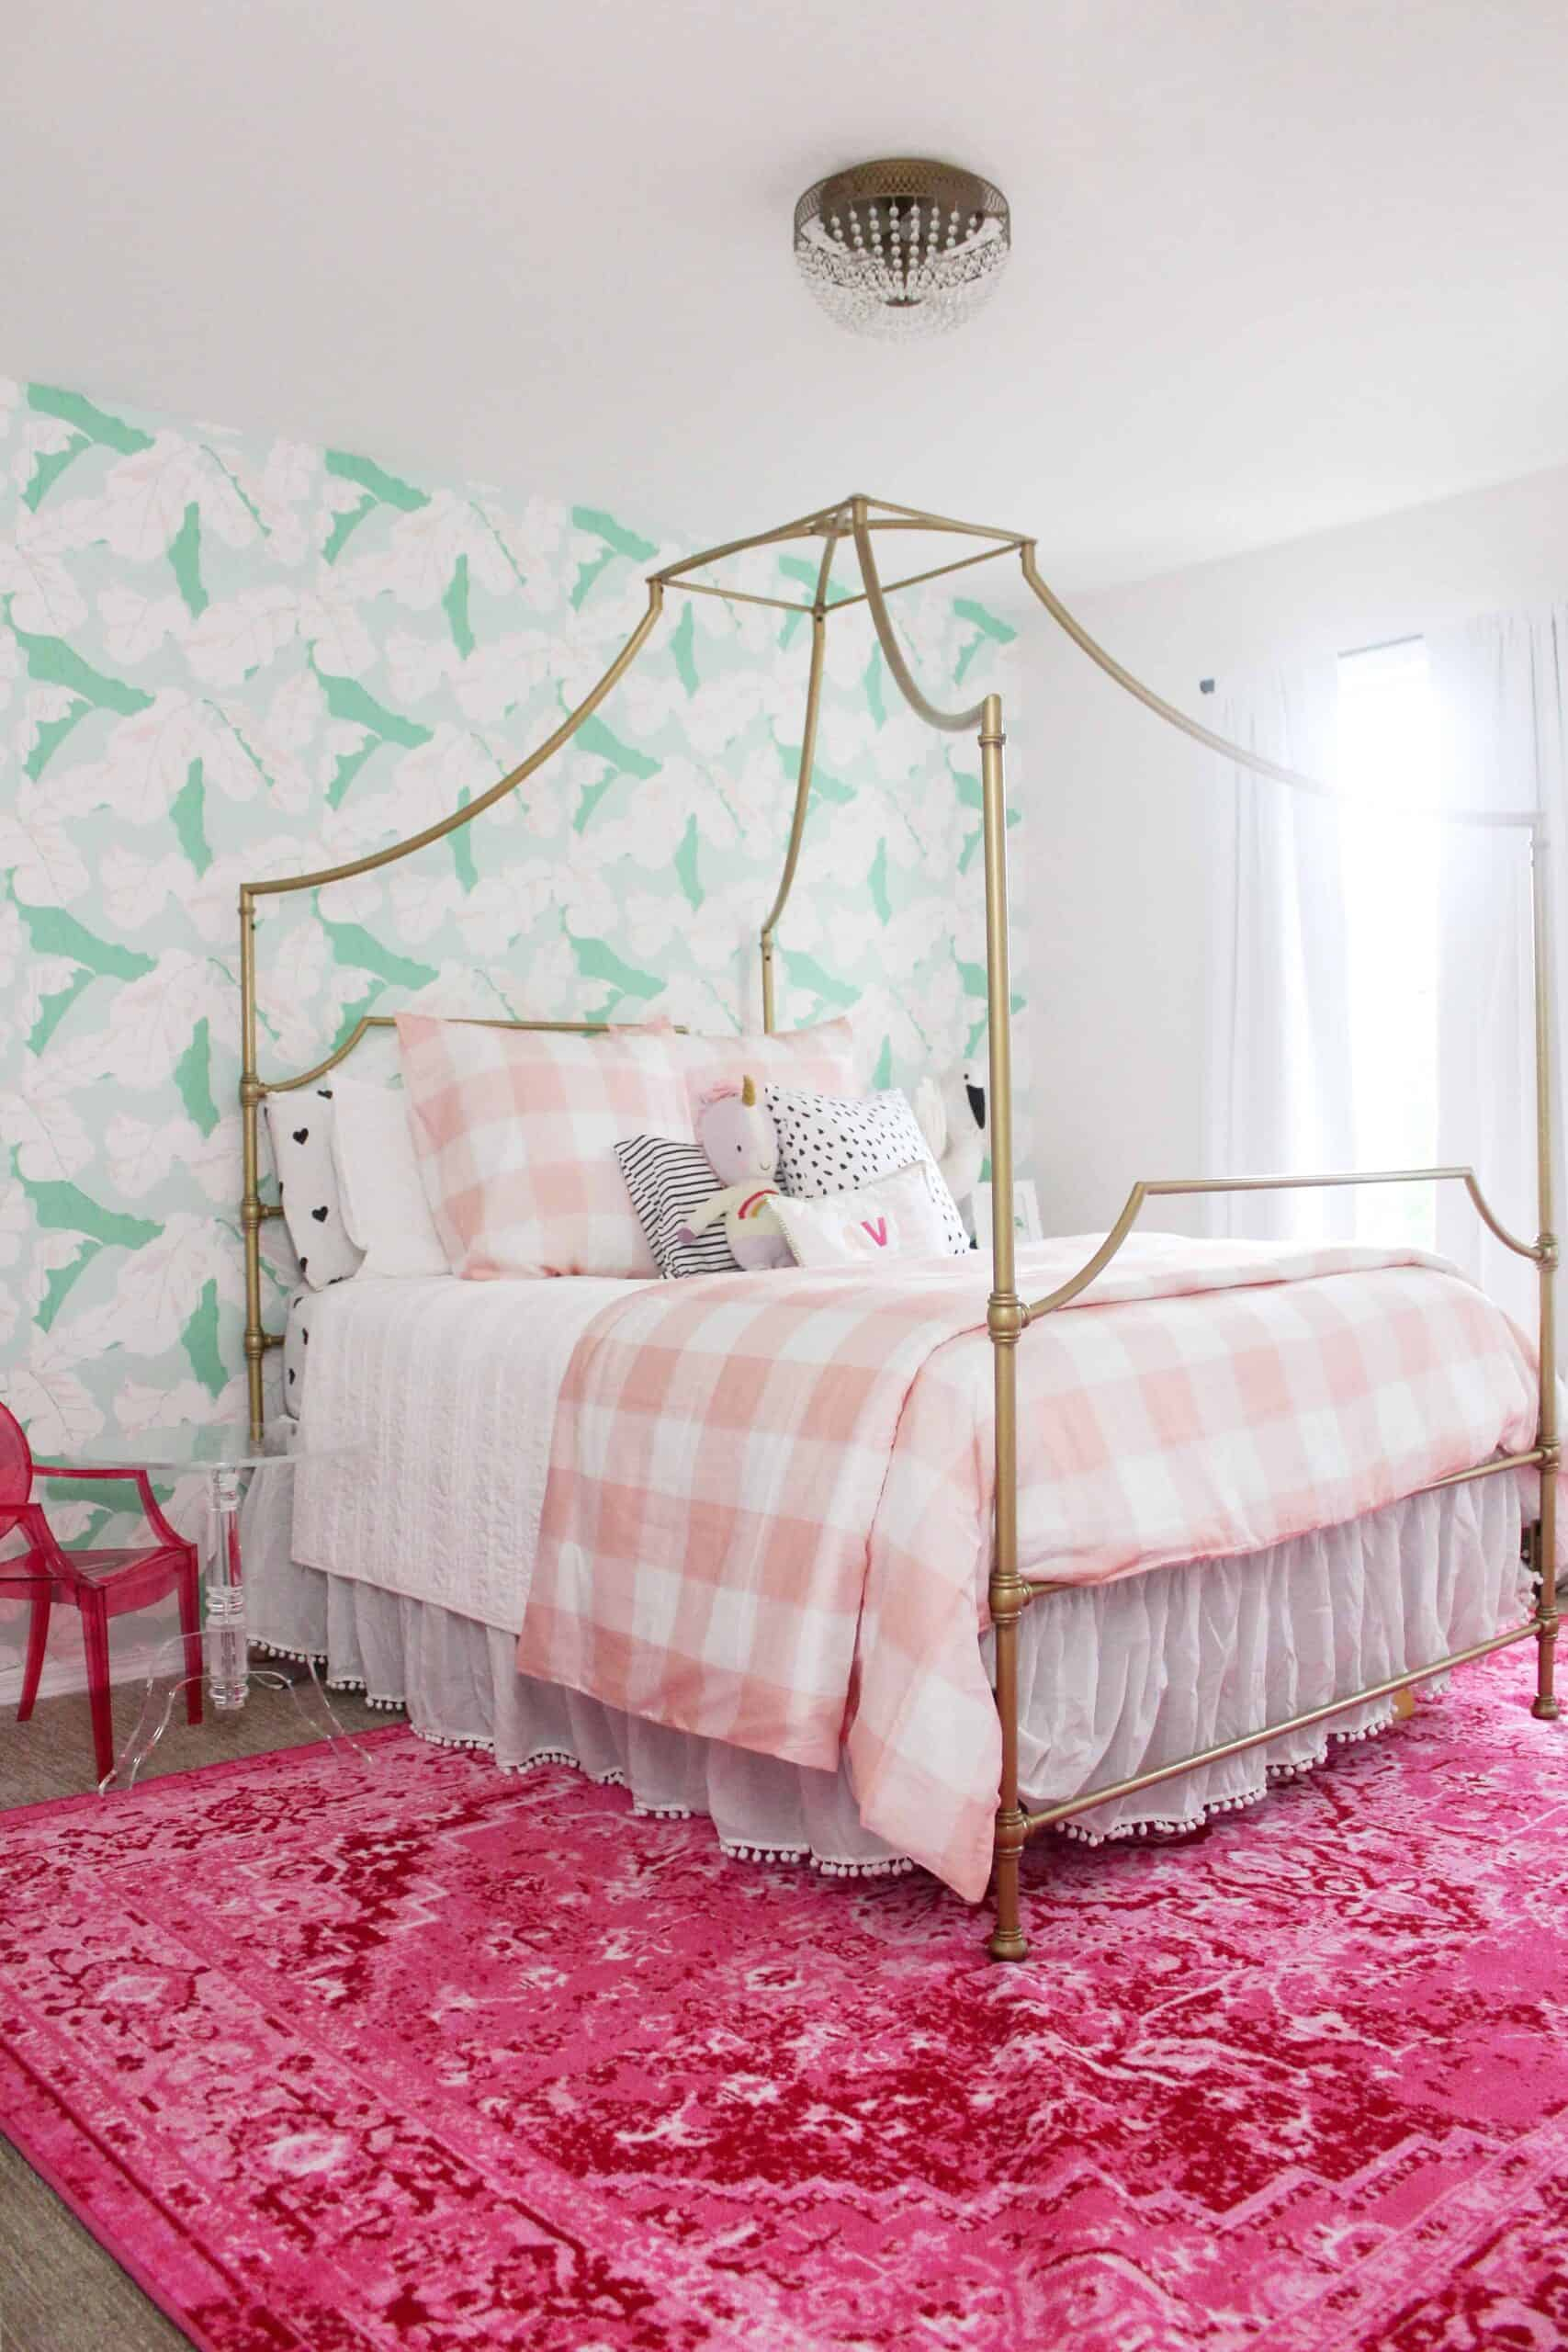 PBTeen Maison bed